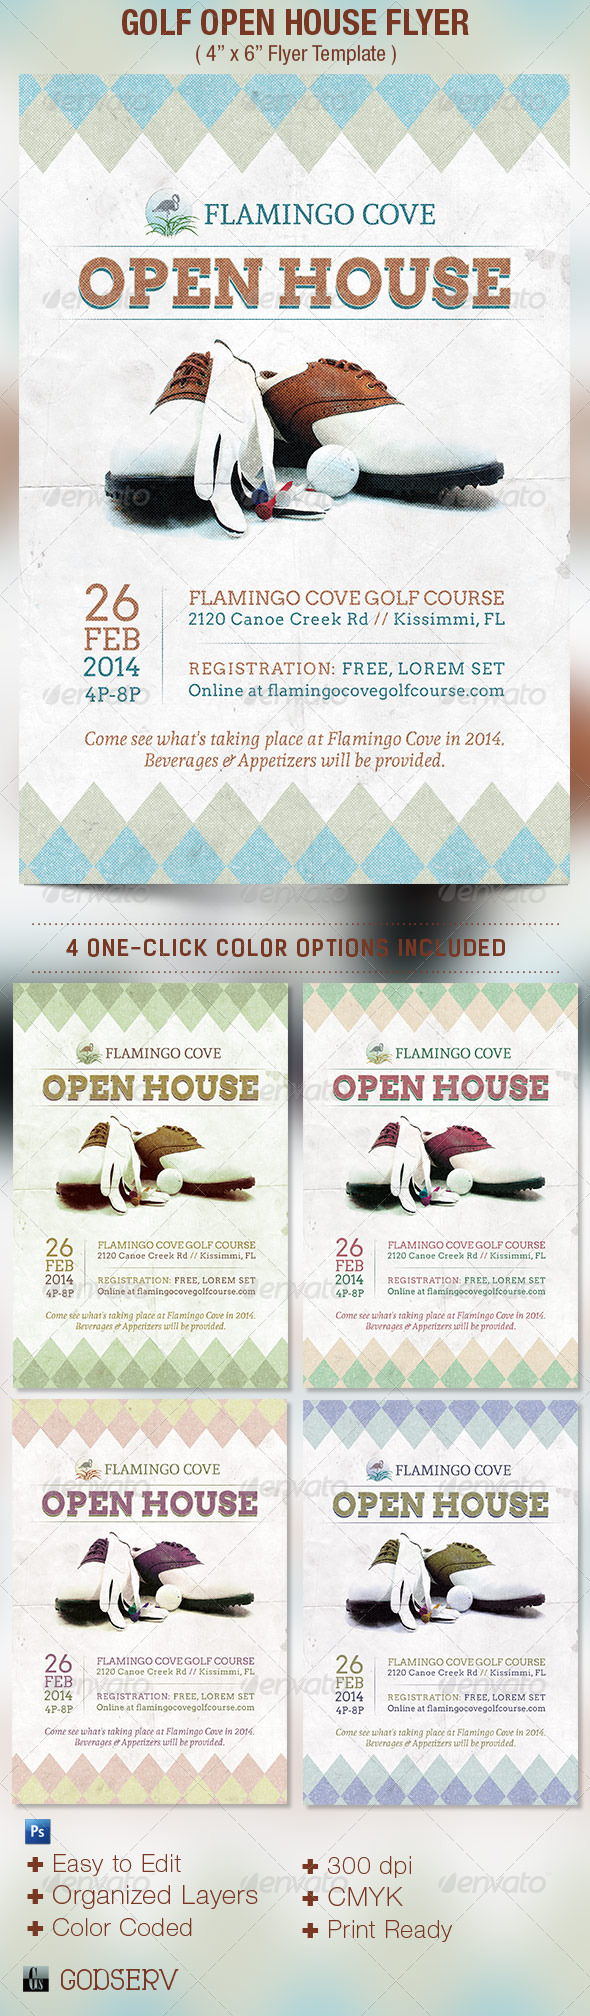 open house brochure template - youth camp flyer poster template graphicmule